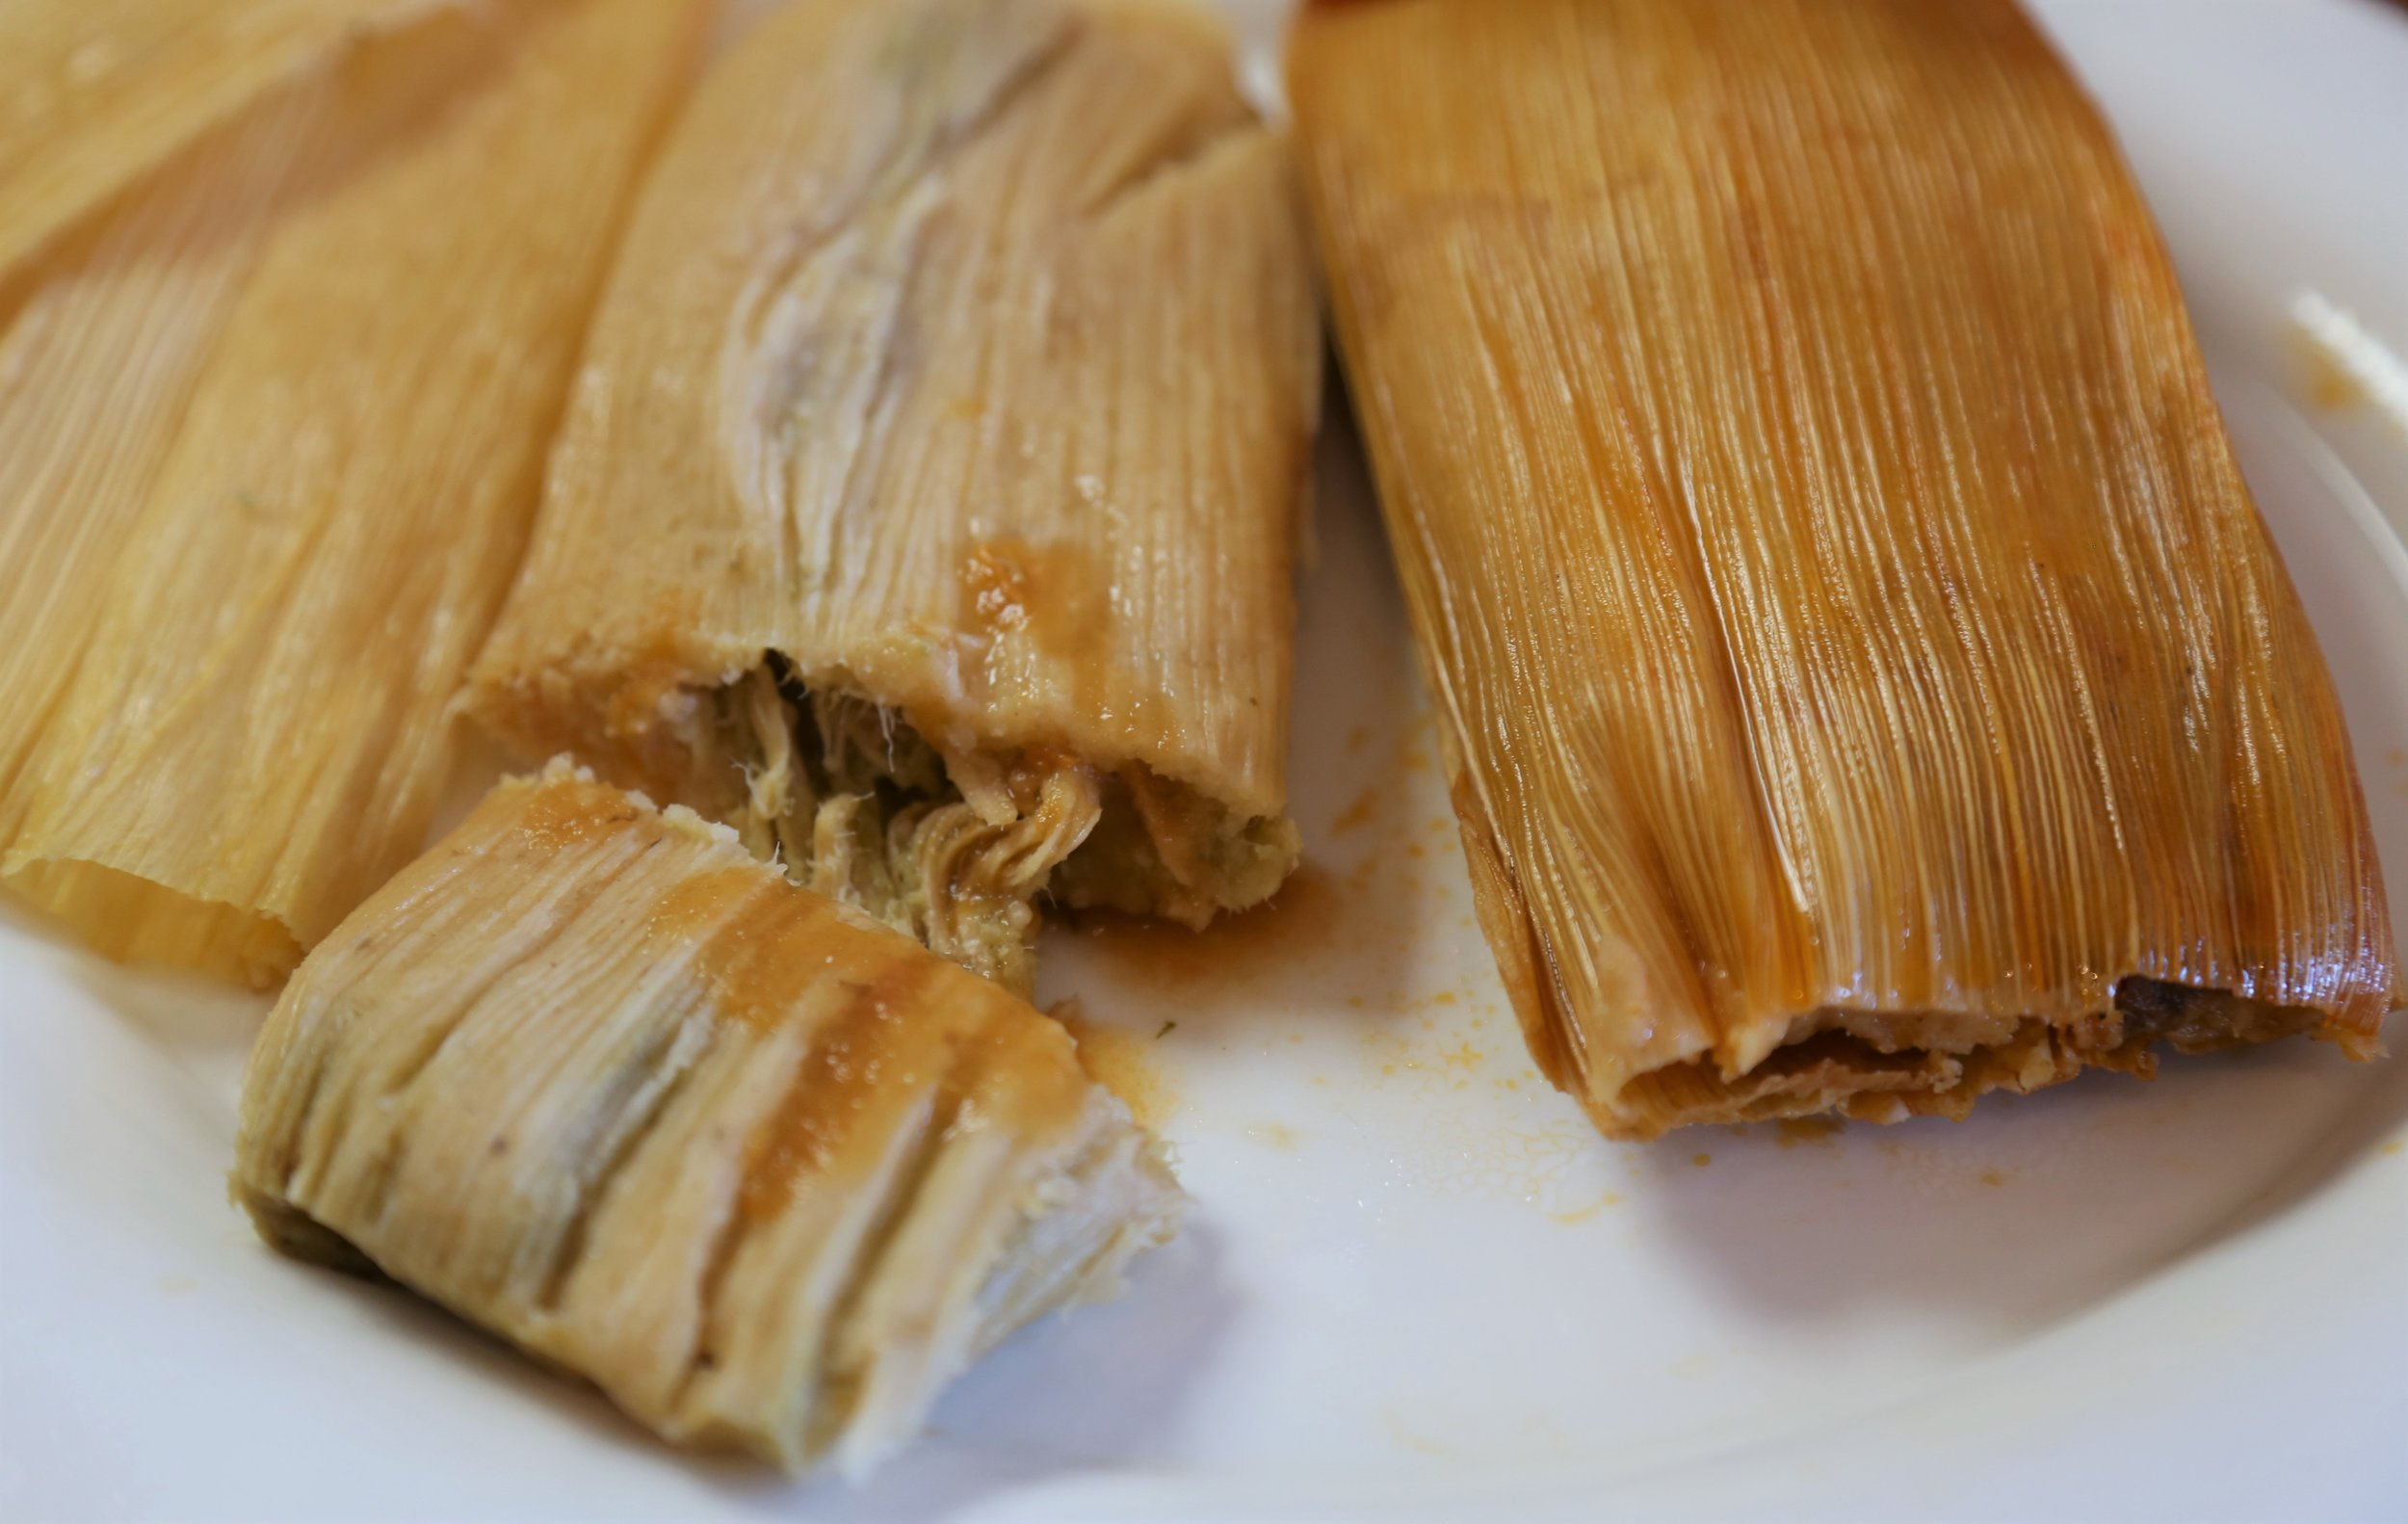 Pork and chicken tamales at Cafetal Quilombo